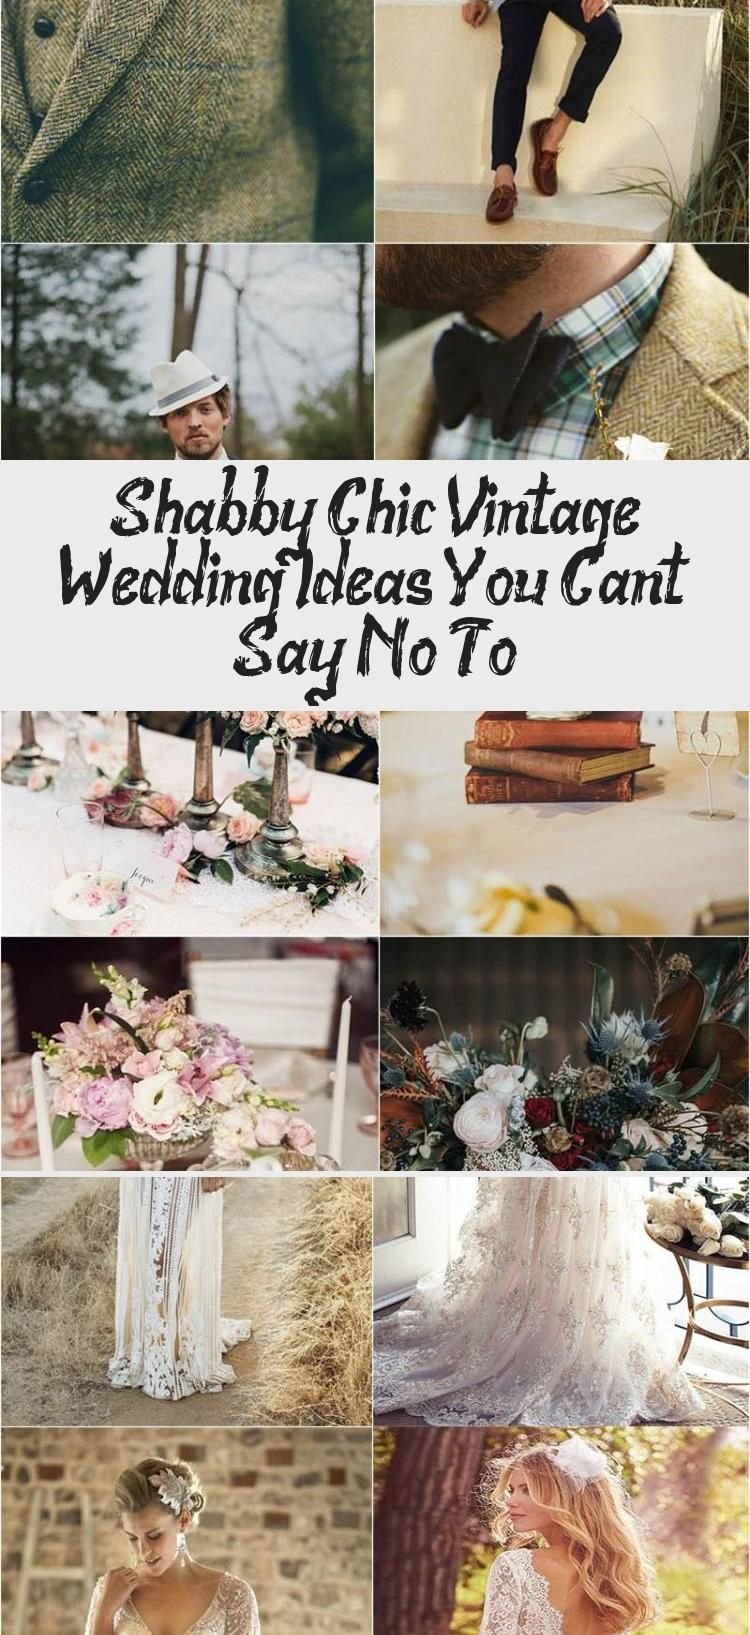 Shabby Chic Vintage Wedding Ideas You Can't Say No To!#weddingnight  #photooftheday #Everything #weddings #lovehim       Which bride has not yet dreamed of an outdoor wedding? It is unique, intimate, breathtaking, and for many a welcome Alternative to the traditional celebrations in the Hotel. Even if your own garden is too small and rather unsuitable for it, this should not stop you. There are many beautiful places to rent... #Chic #Ideas #photooft #Shabby #Toweddingnight #vintage #Wedding #vin